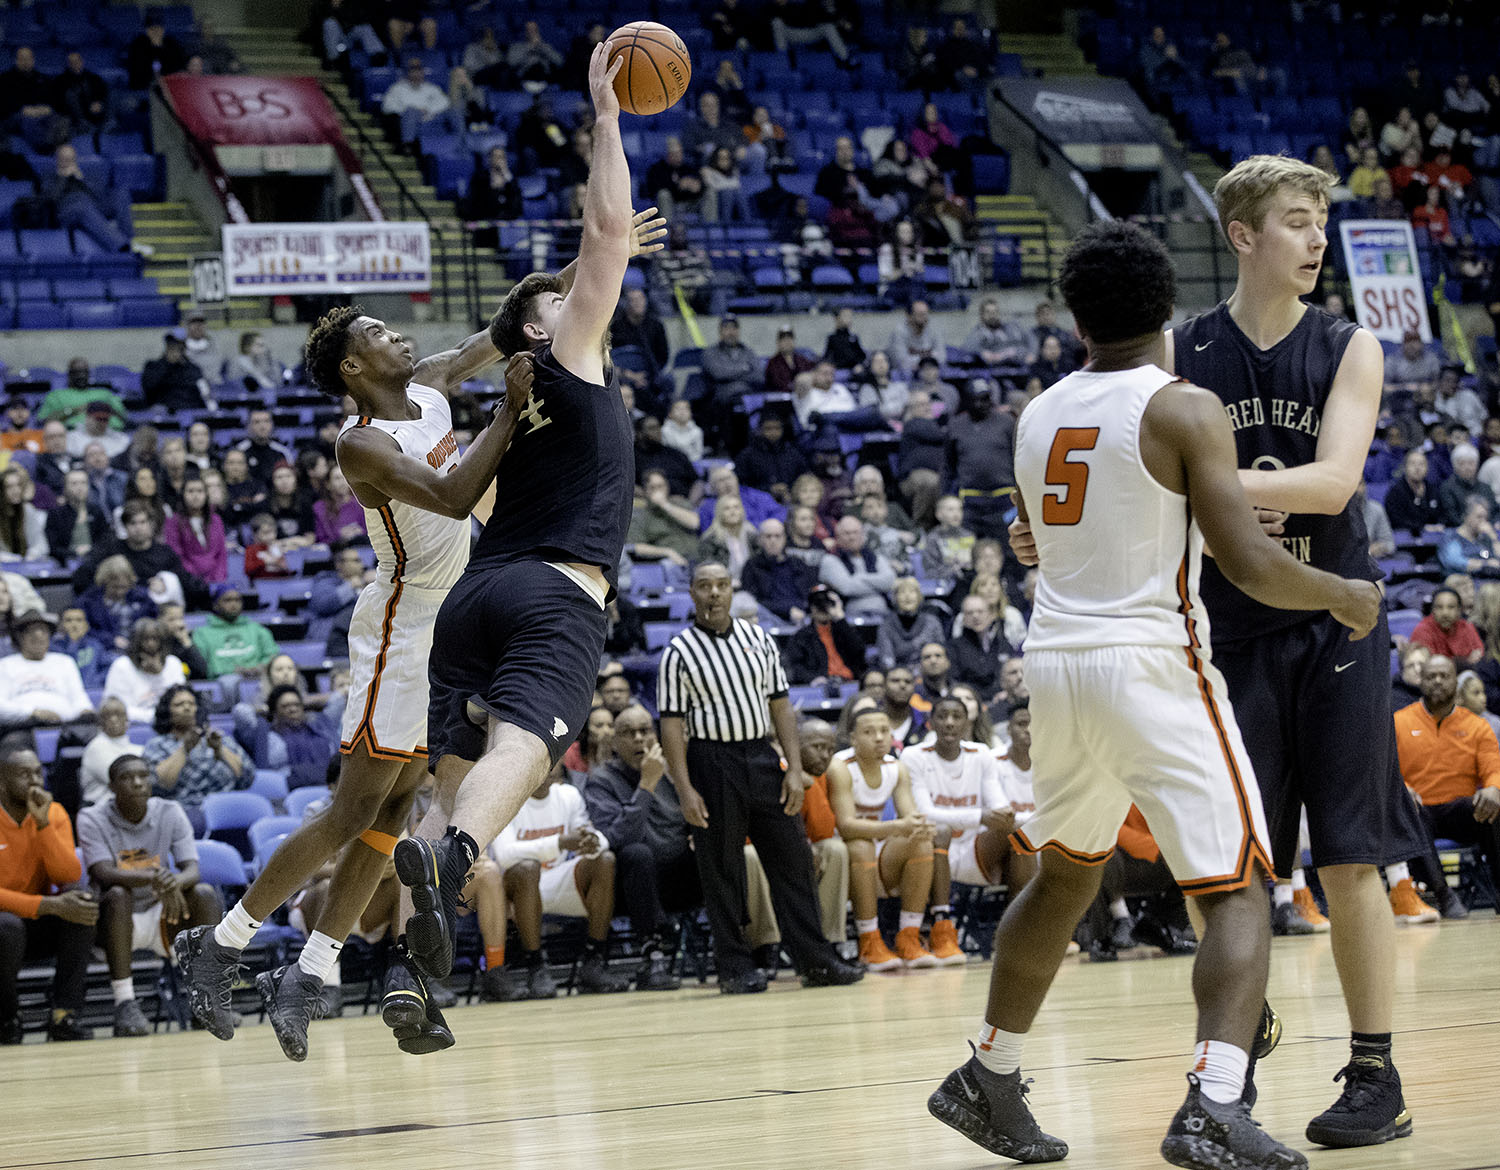 Sacred Heart-Griffin's Nick Broeker intercepts a pass intended for Lanphier's Karl Wright during the Boys City Tournament at the Bank of Springfield Center Thursday, Jan. 17, 2019.  [Ted Schurter/The State Journal-Register]